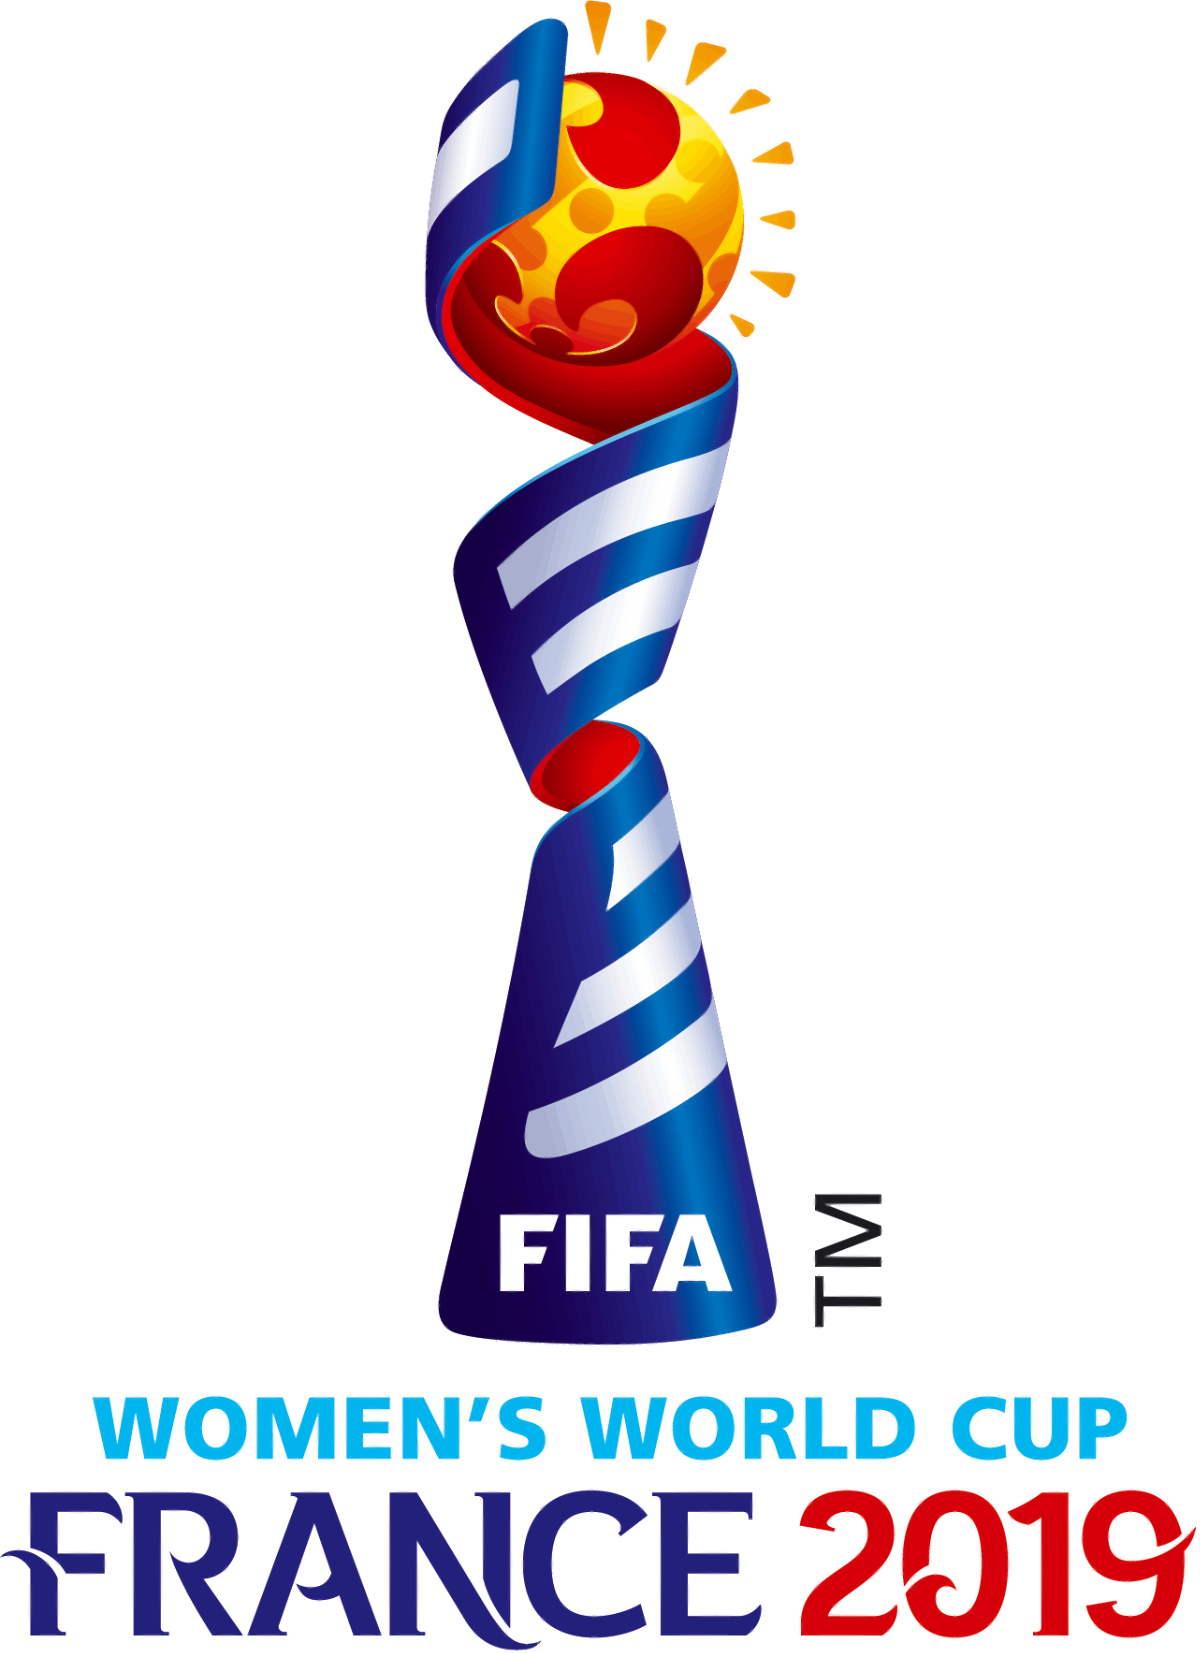 France clipart cheese french. Women s world cup